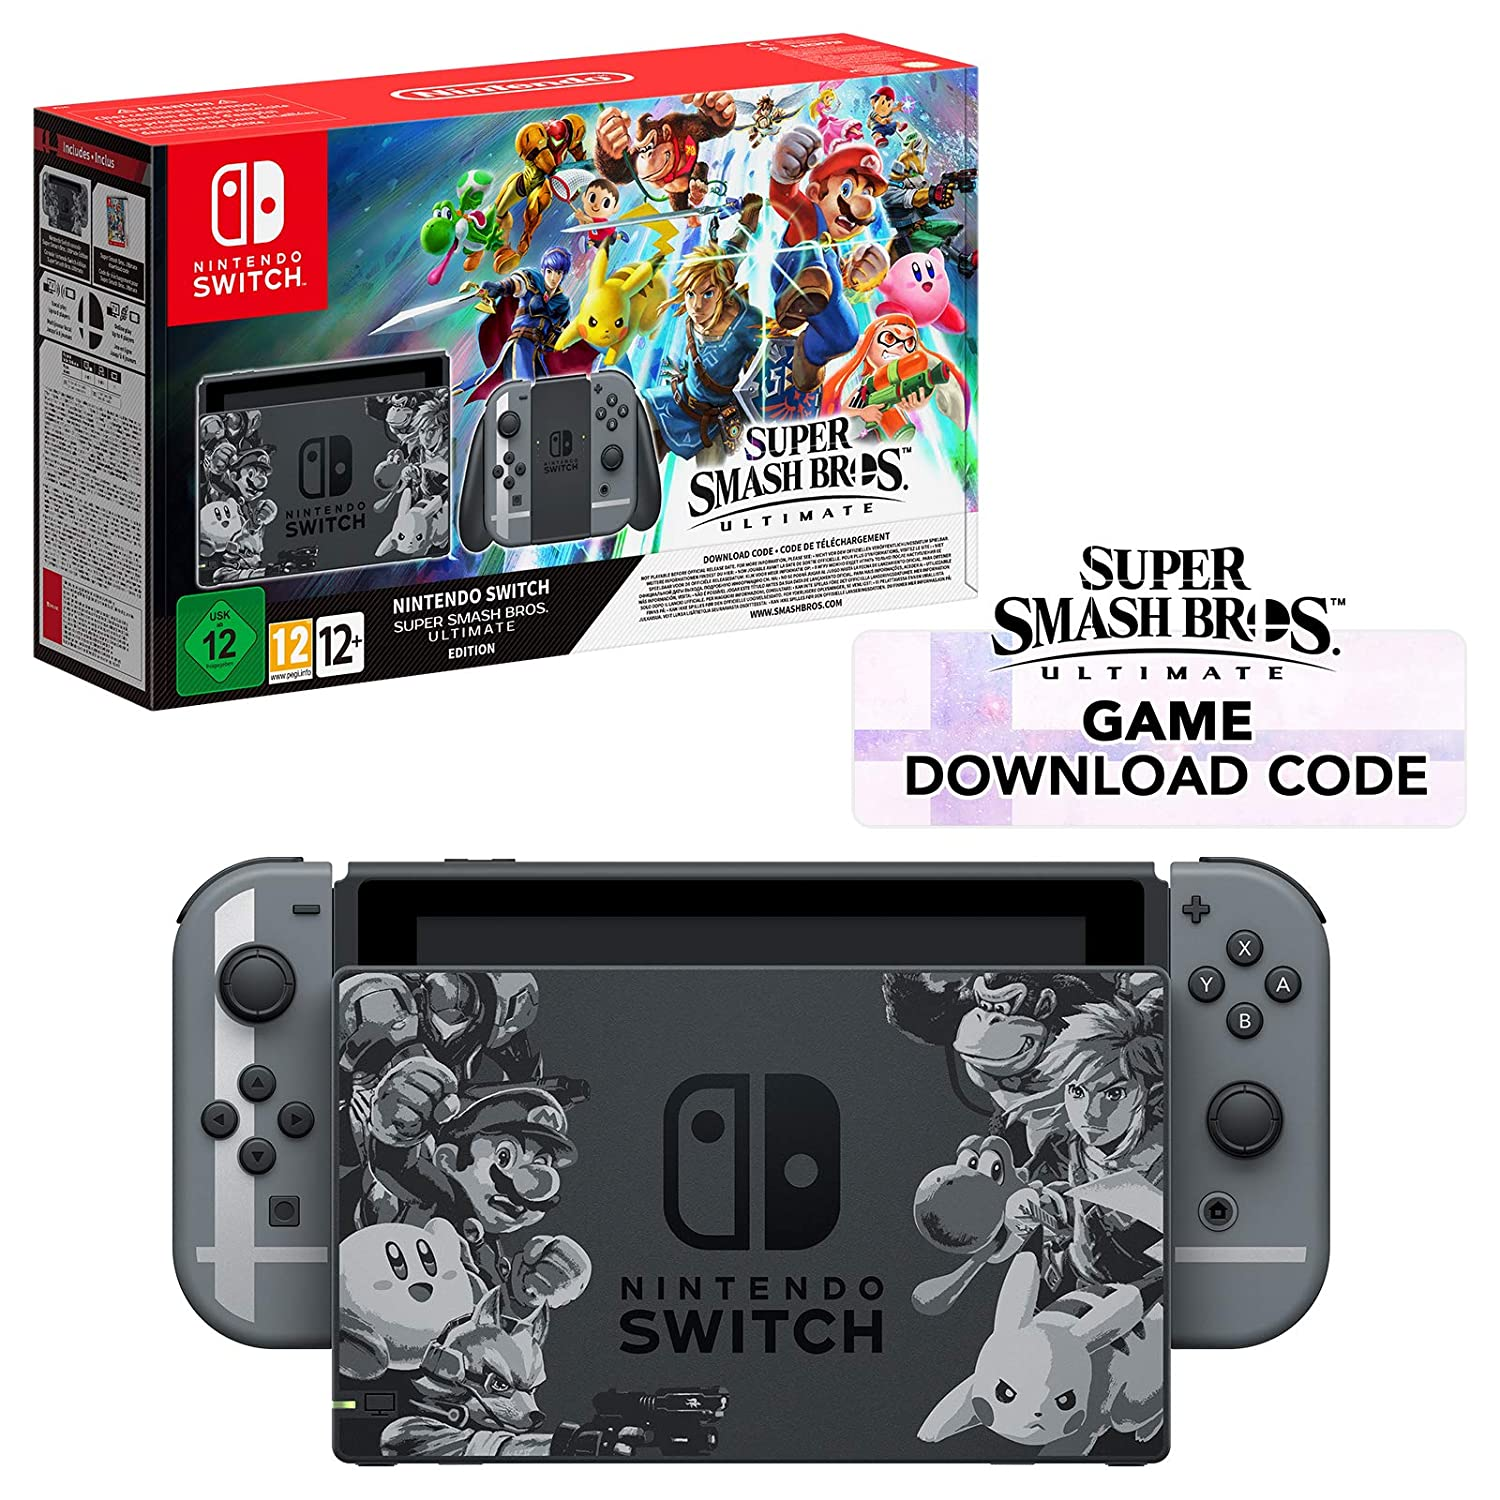 Resultado de imagem para NINTENDO SWITCH 32GB GRAY BUNDLE SUPER SMASH BROS ULTIMATE